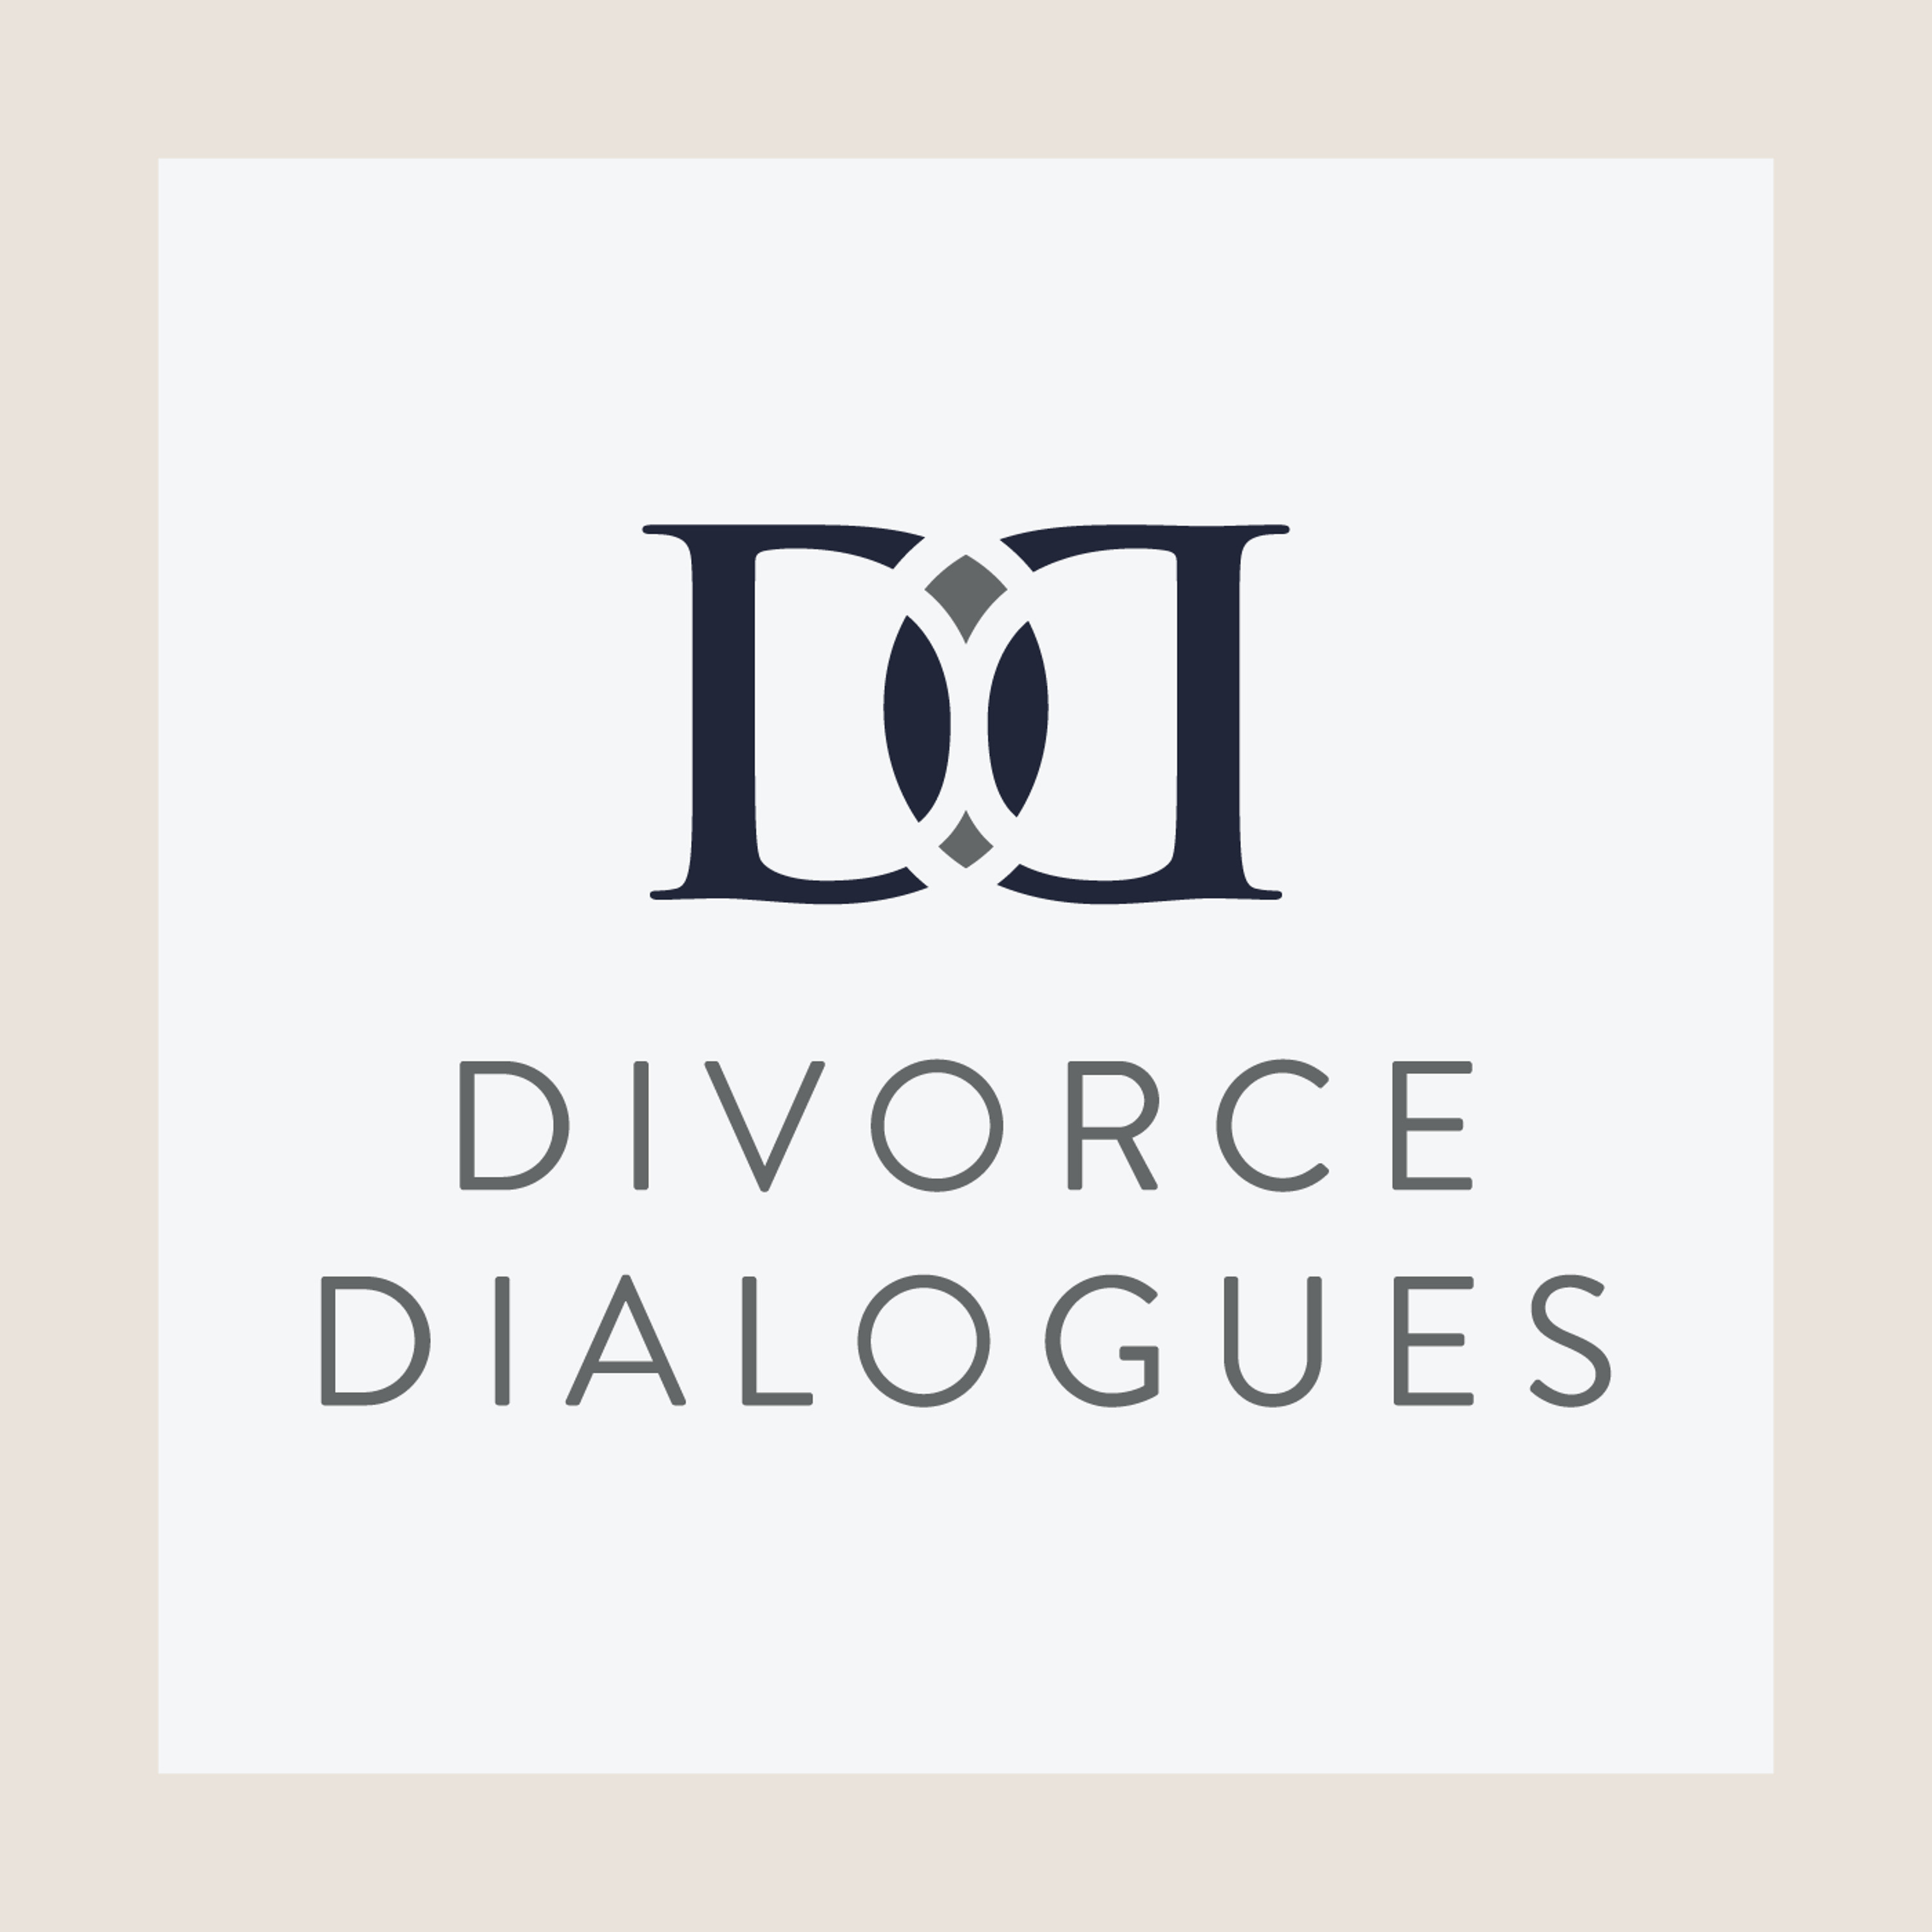 Divorce Dialogues - The Decision to Divorce: How Do You Know When It's Time to Leave? with Nancy Colier